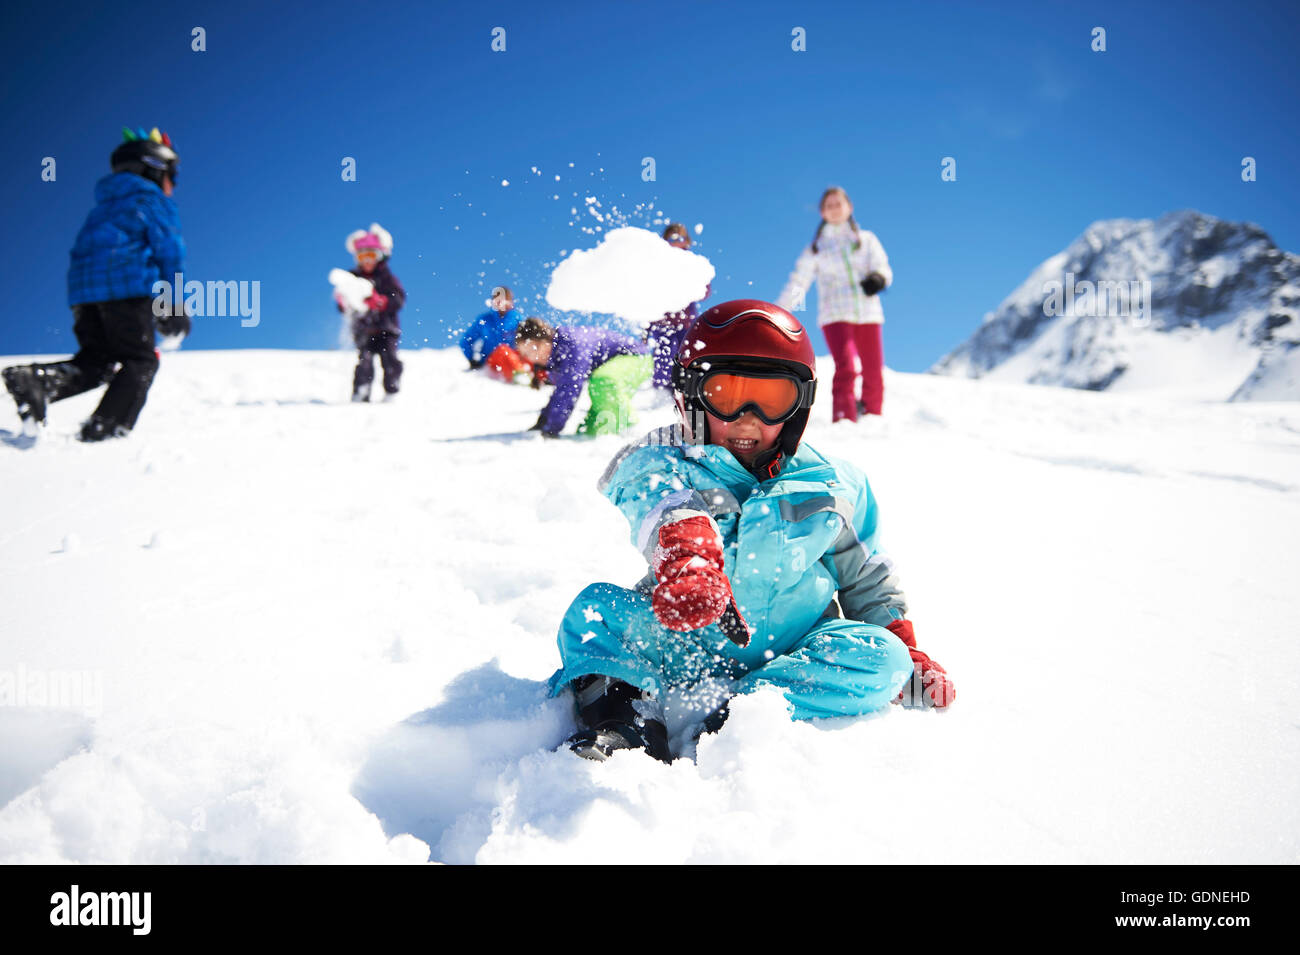 Young boy throwing snowball whilst friends play behind him - Stock Image